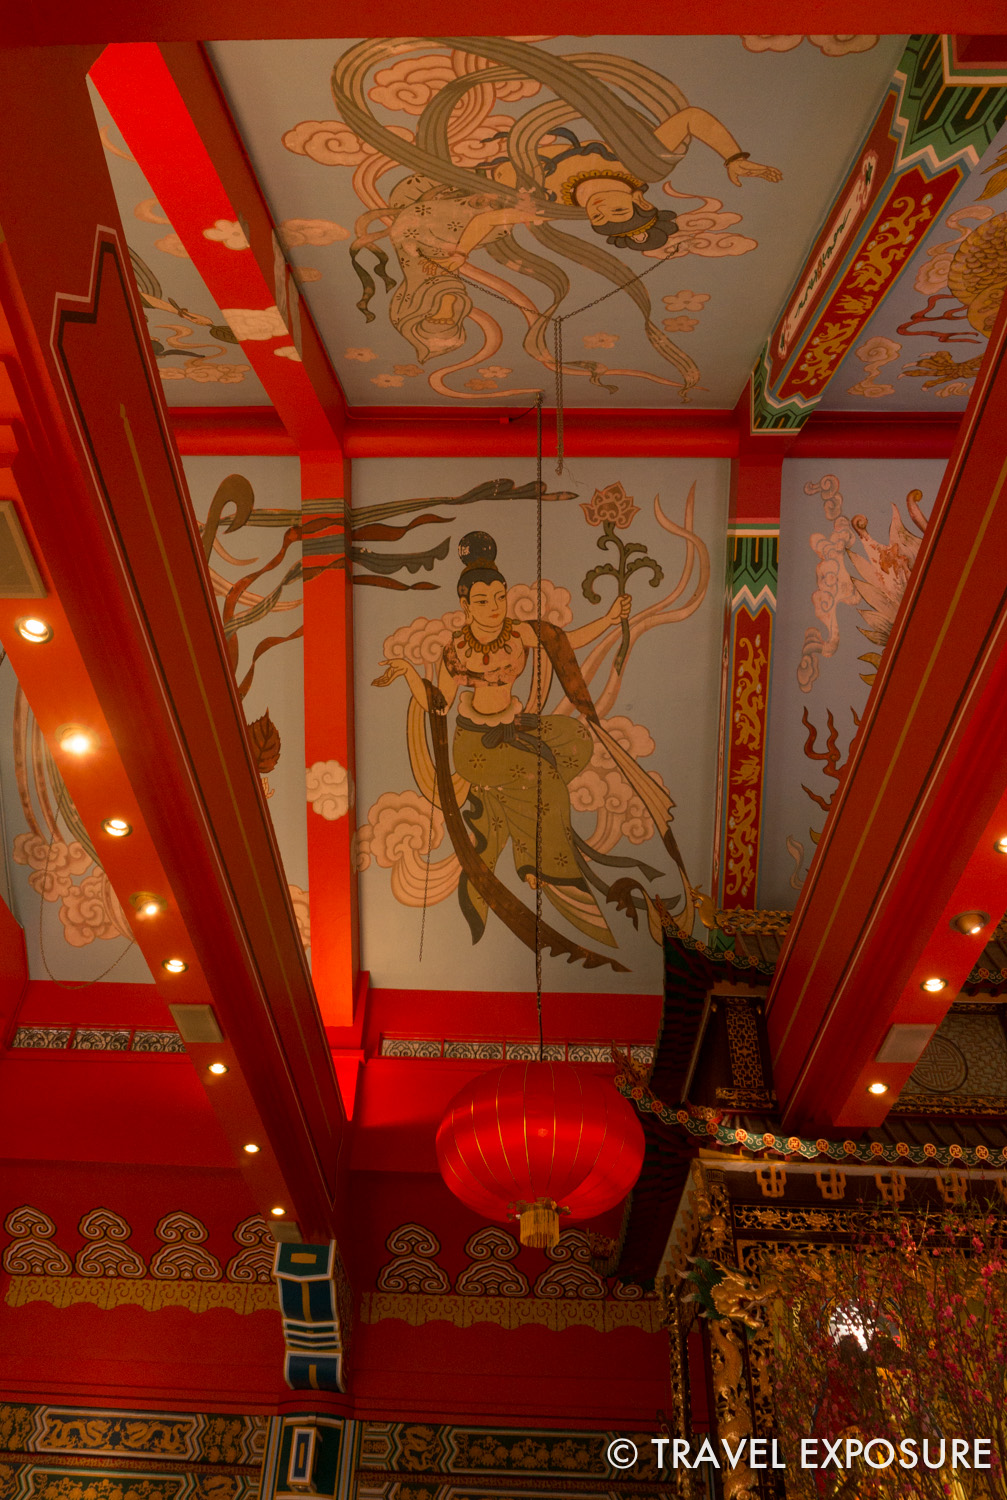 Figures painted on the ceiling of Po Lin Monastery in Ngong Ping